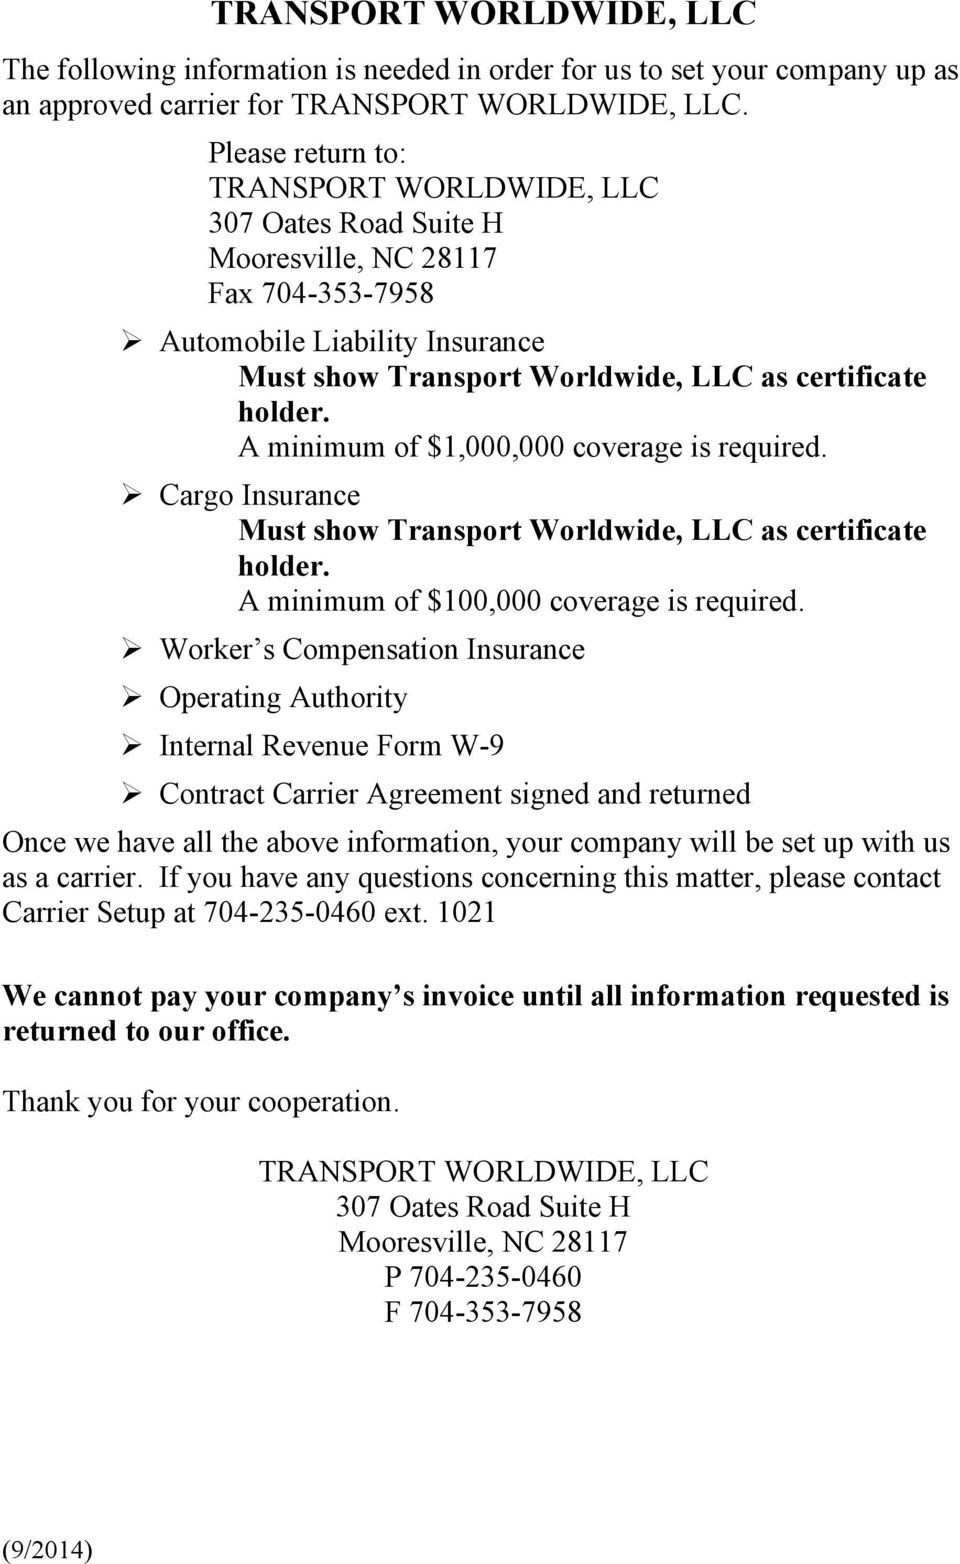 A minimum of $1,000,000 coverage is required.! Cargo Insurance Must show Transport Worldwide, LLC as certificate holder. A minimum of $100,000 coverage is required.! Worker s Compensation Insurance!